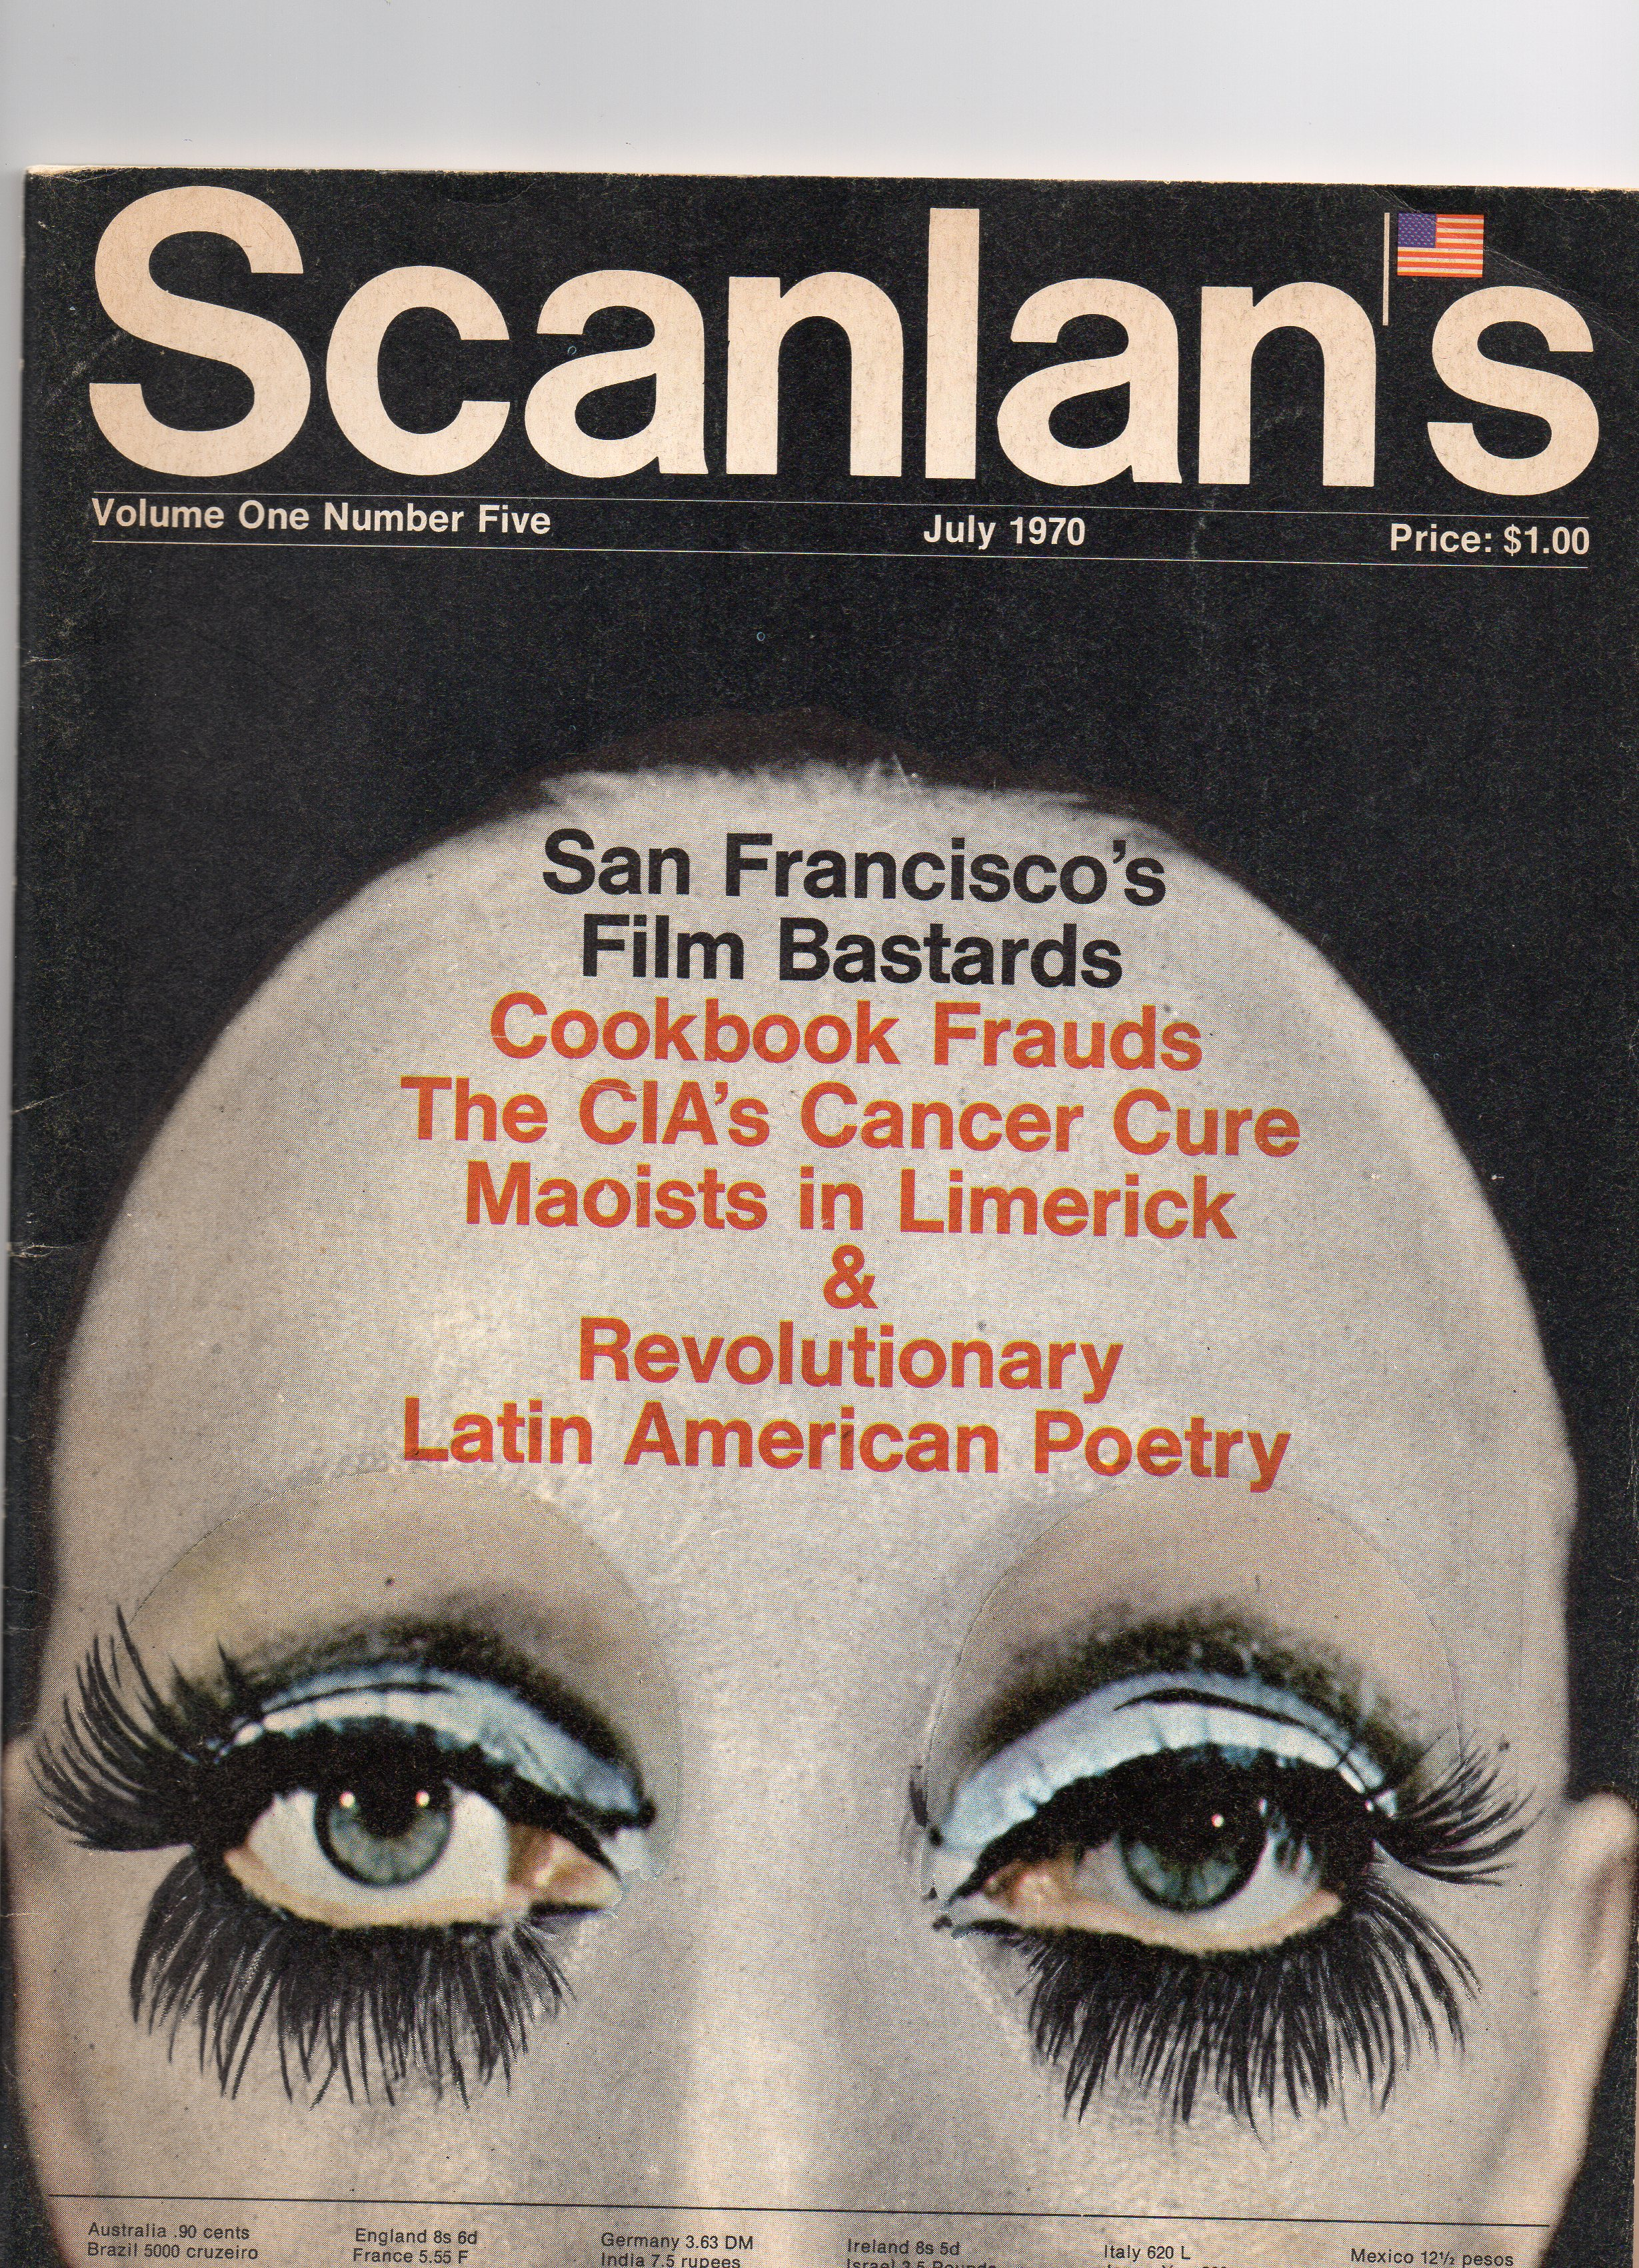 Scanlan's Monthly 5, July 1970, from my personal collection